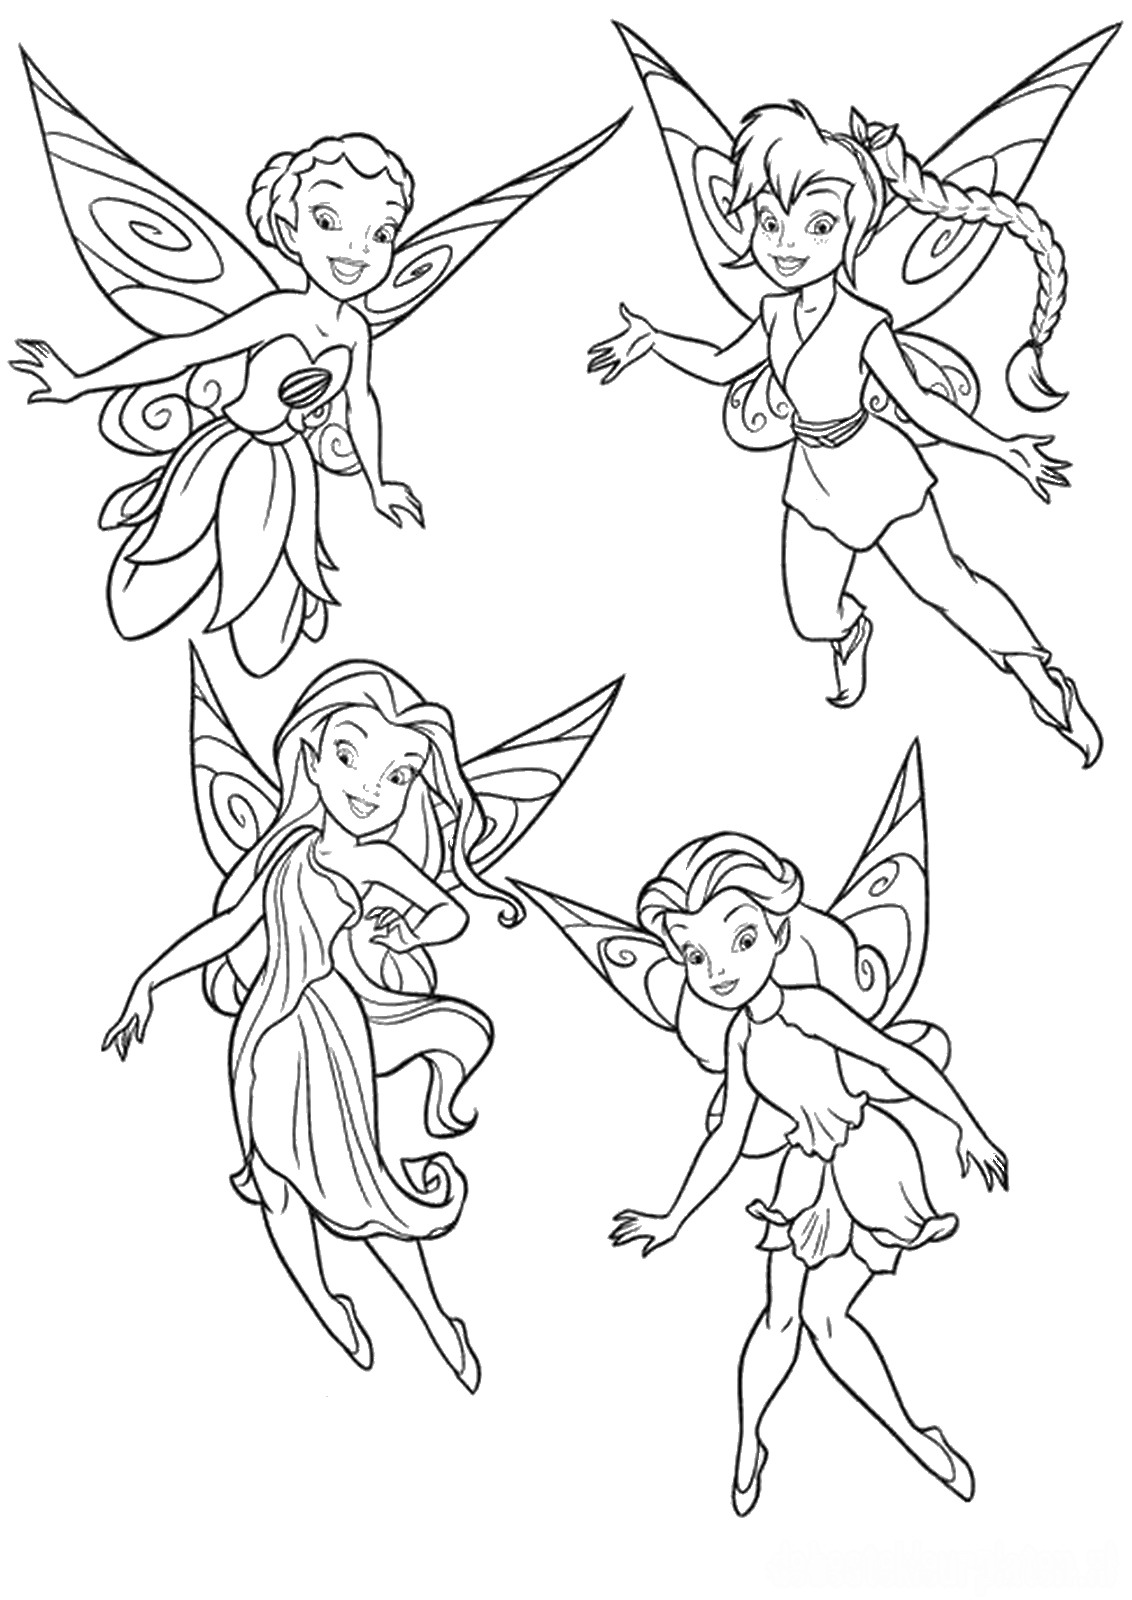 coloring tinkerbell cartoon cute collection of tinkerbell coloring pages to print tinkerbell cartoon coloring